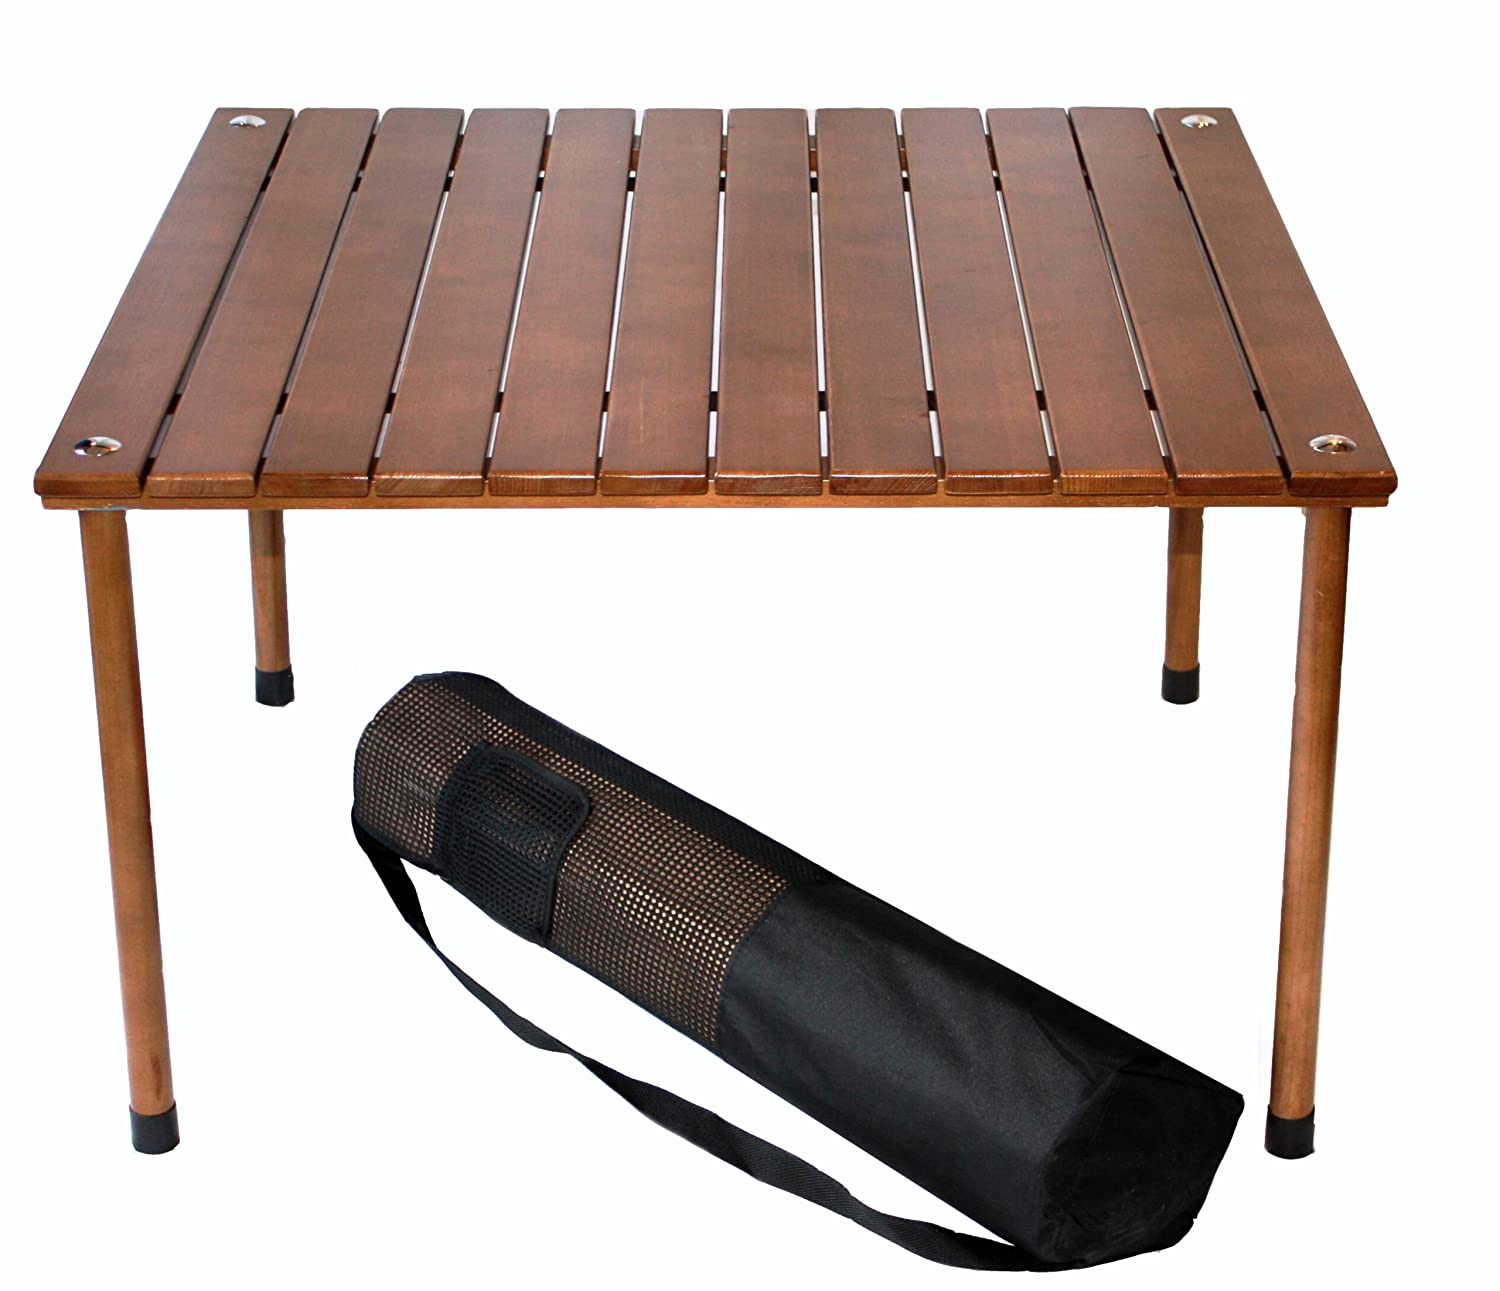 Portable folding camping picnic table wood low desk indoor for Low dining table